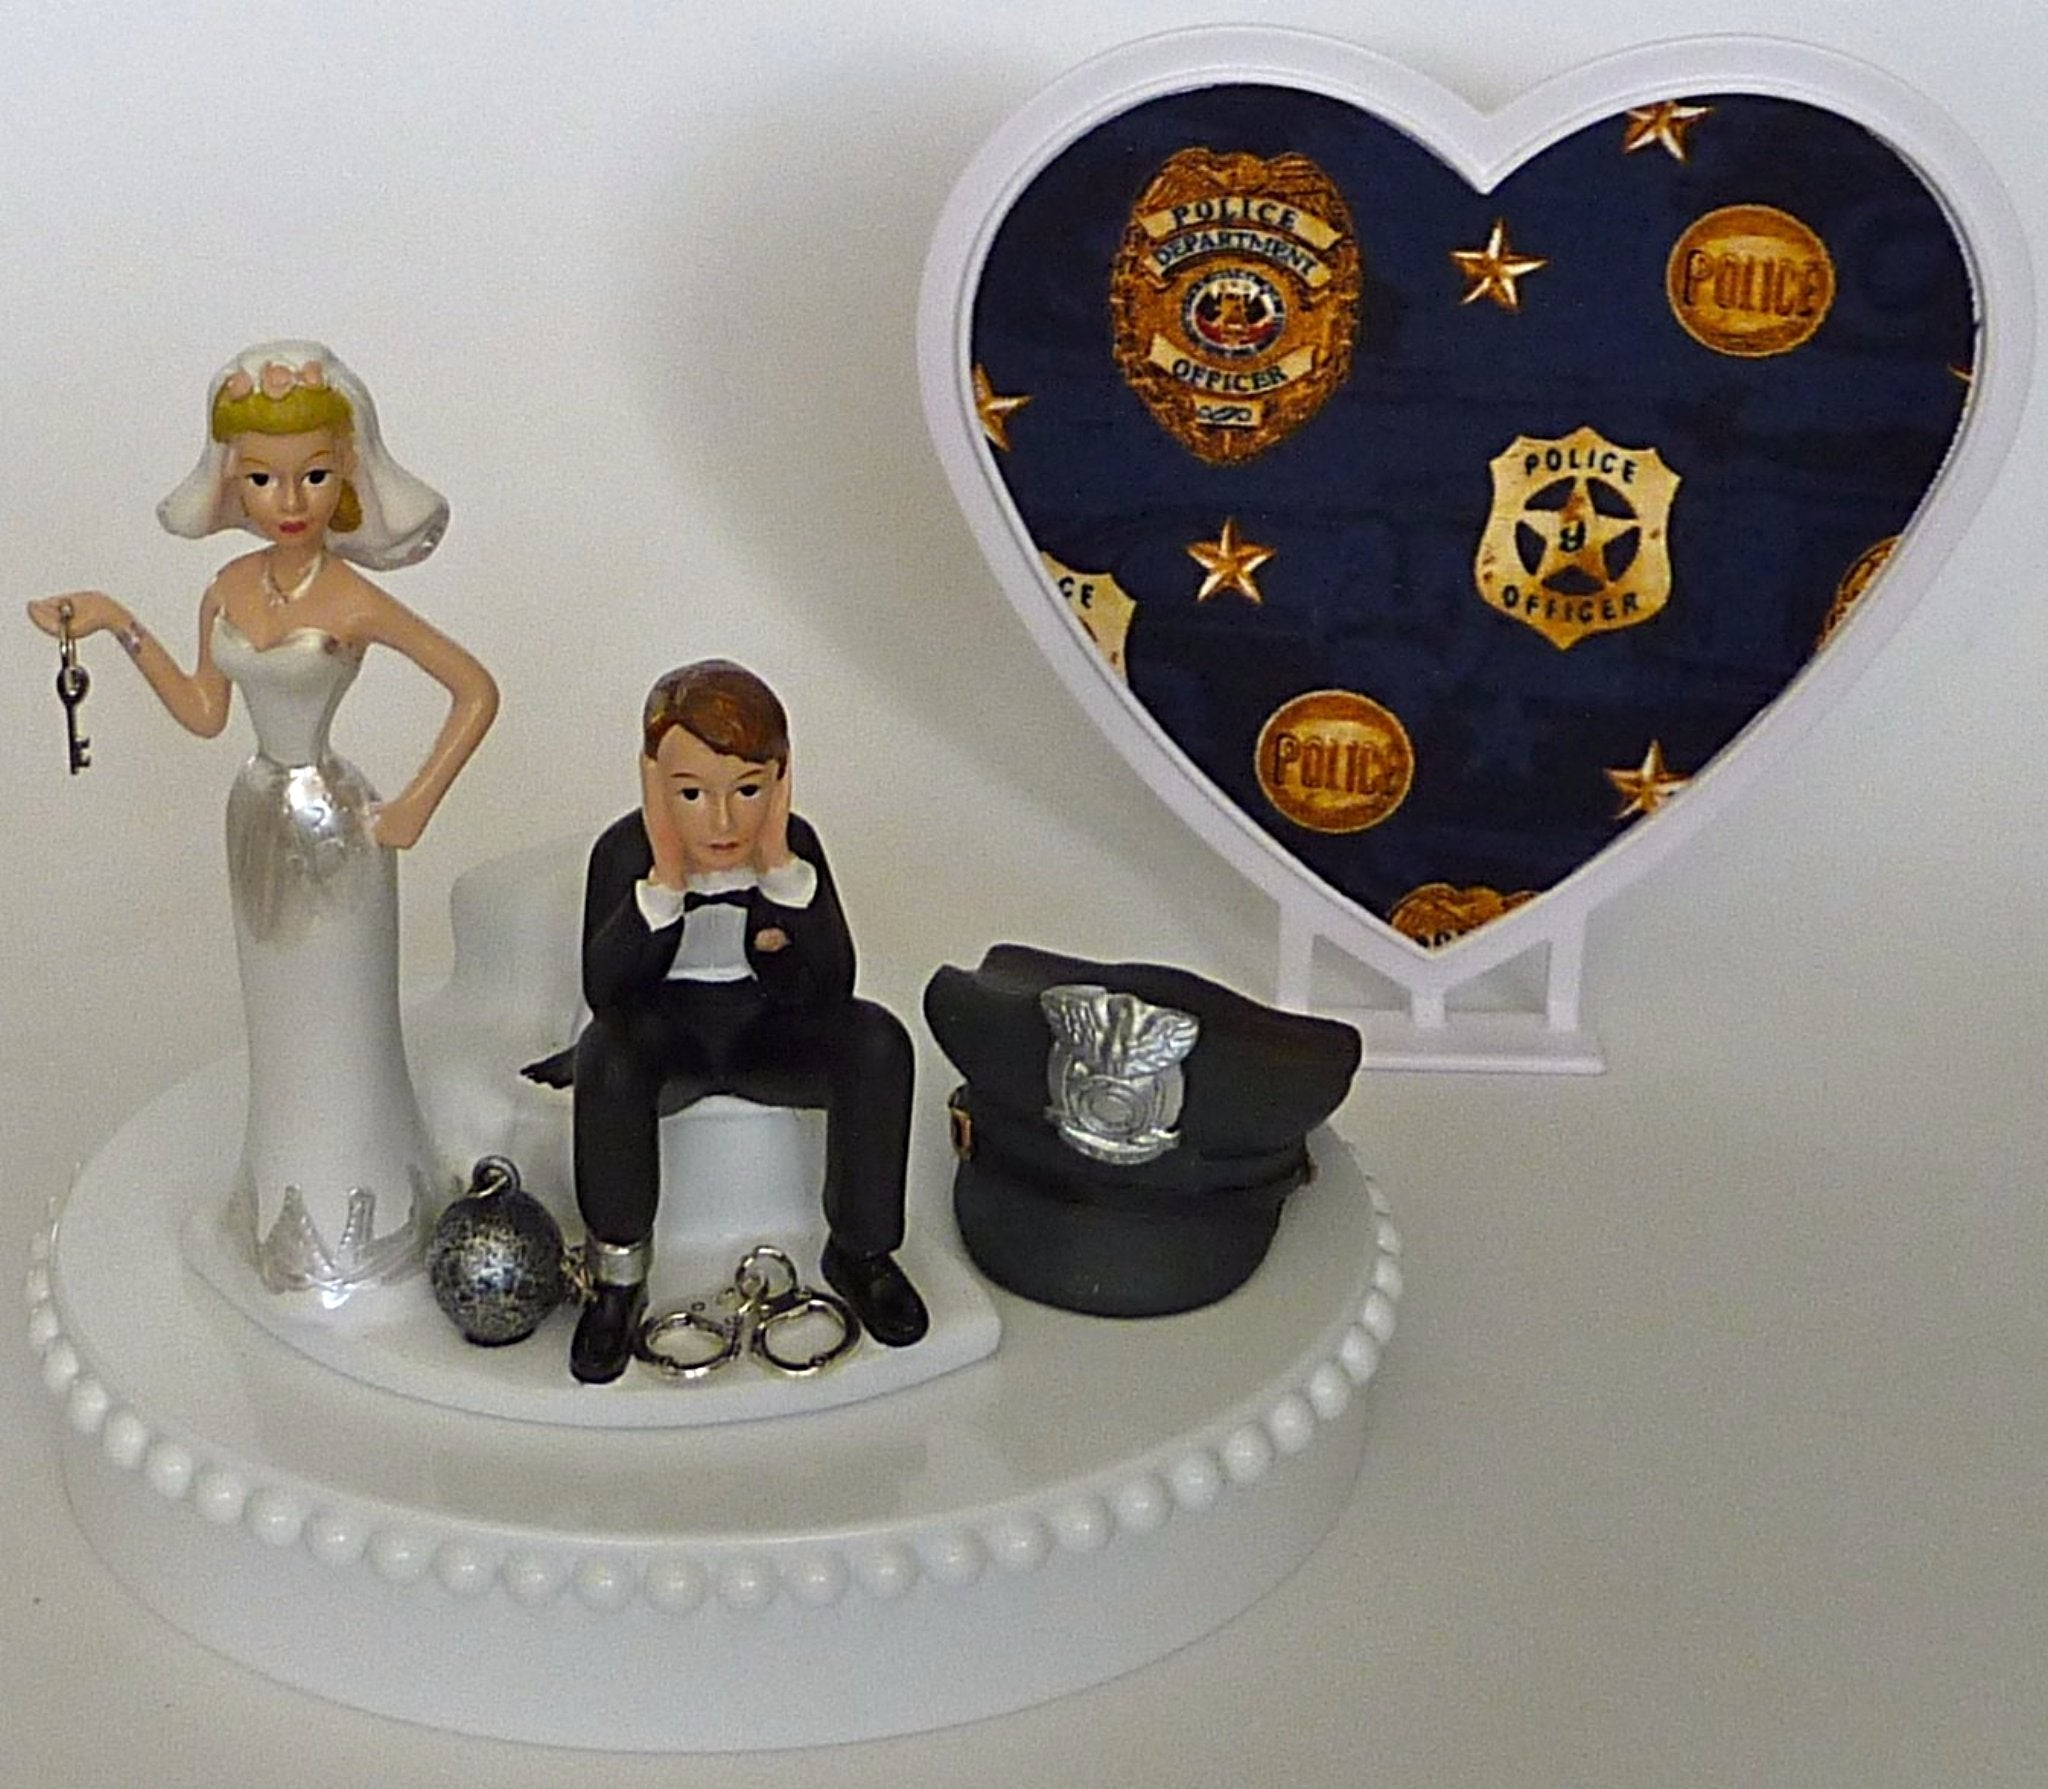 Ball and chain wedding cake topper Fun Wedding Things humorous funny